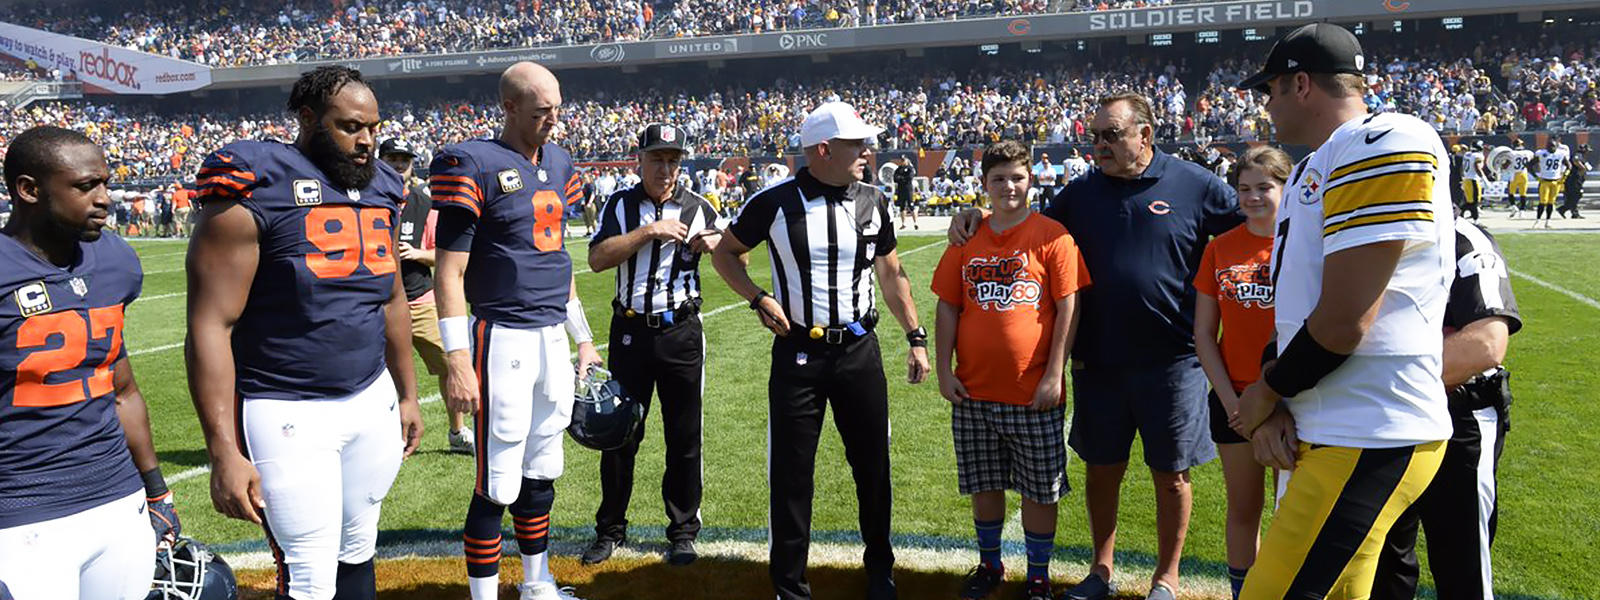 Elm 8th grader Nathan Calderon joins the Bears and Steelers at midfield for the pregame coin toss at Soldier Field.